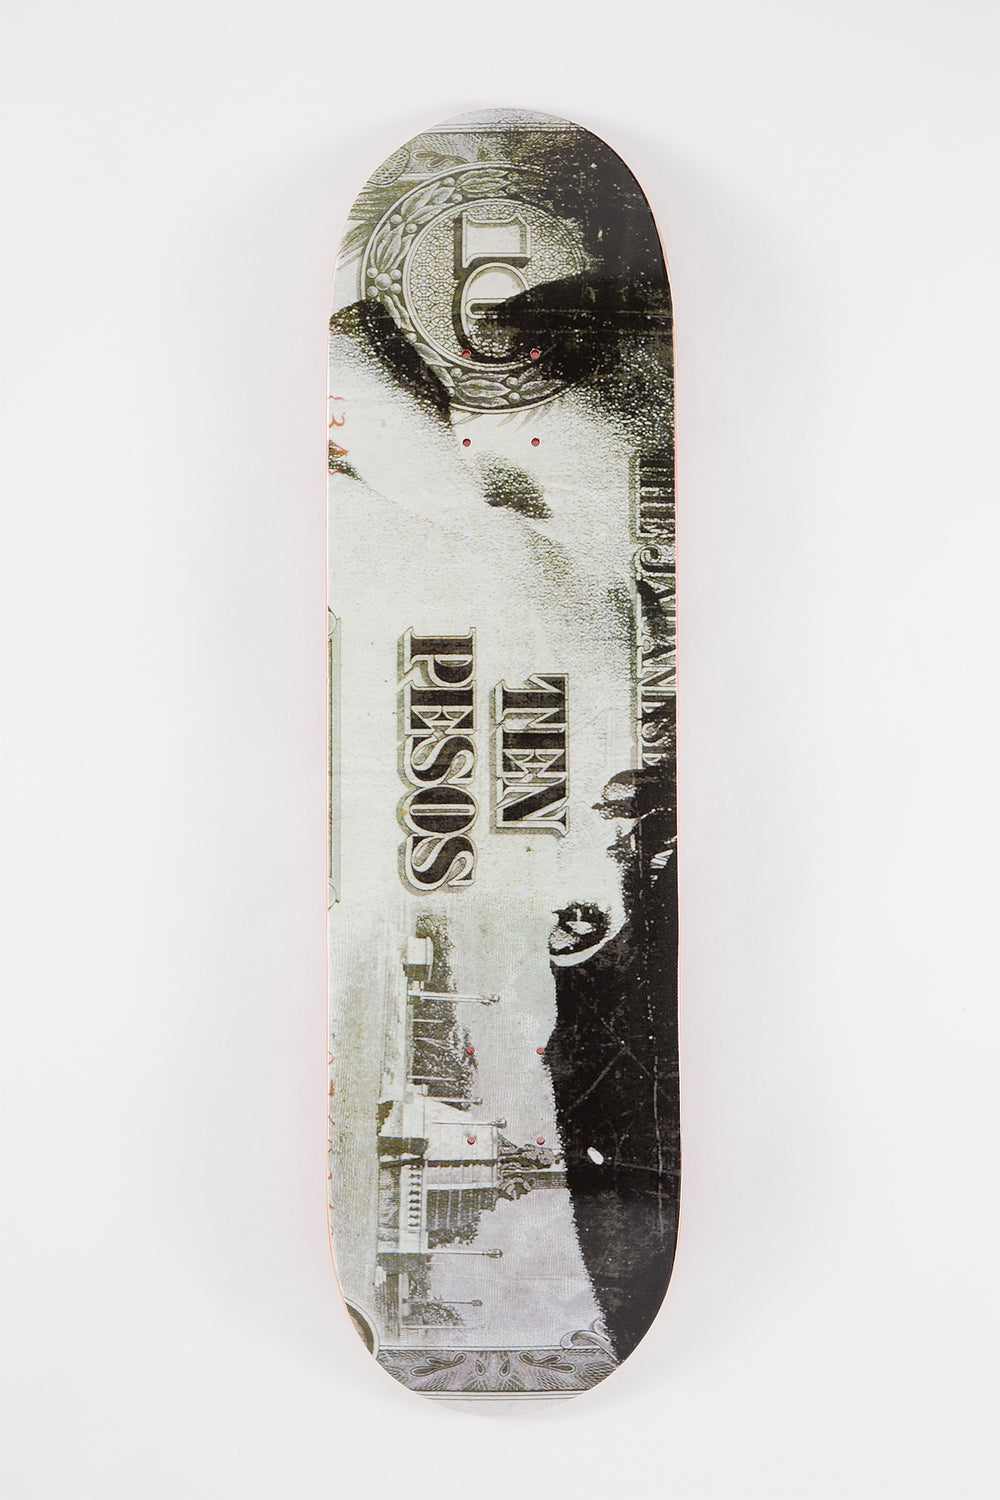 Skate Mental Kleppan Dads Money Skateboard Deck 8.5